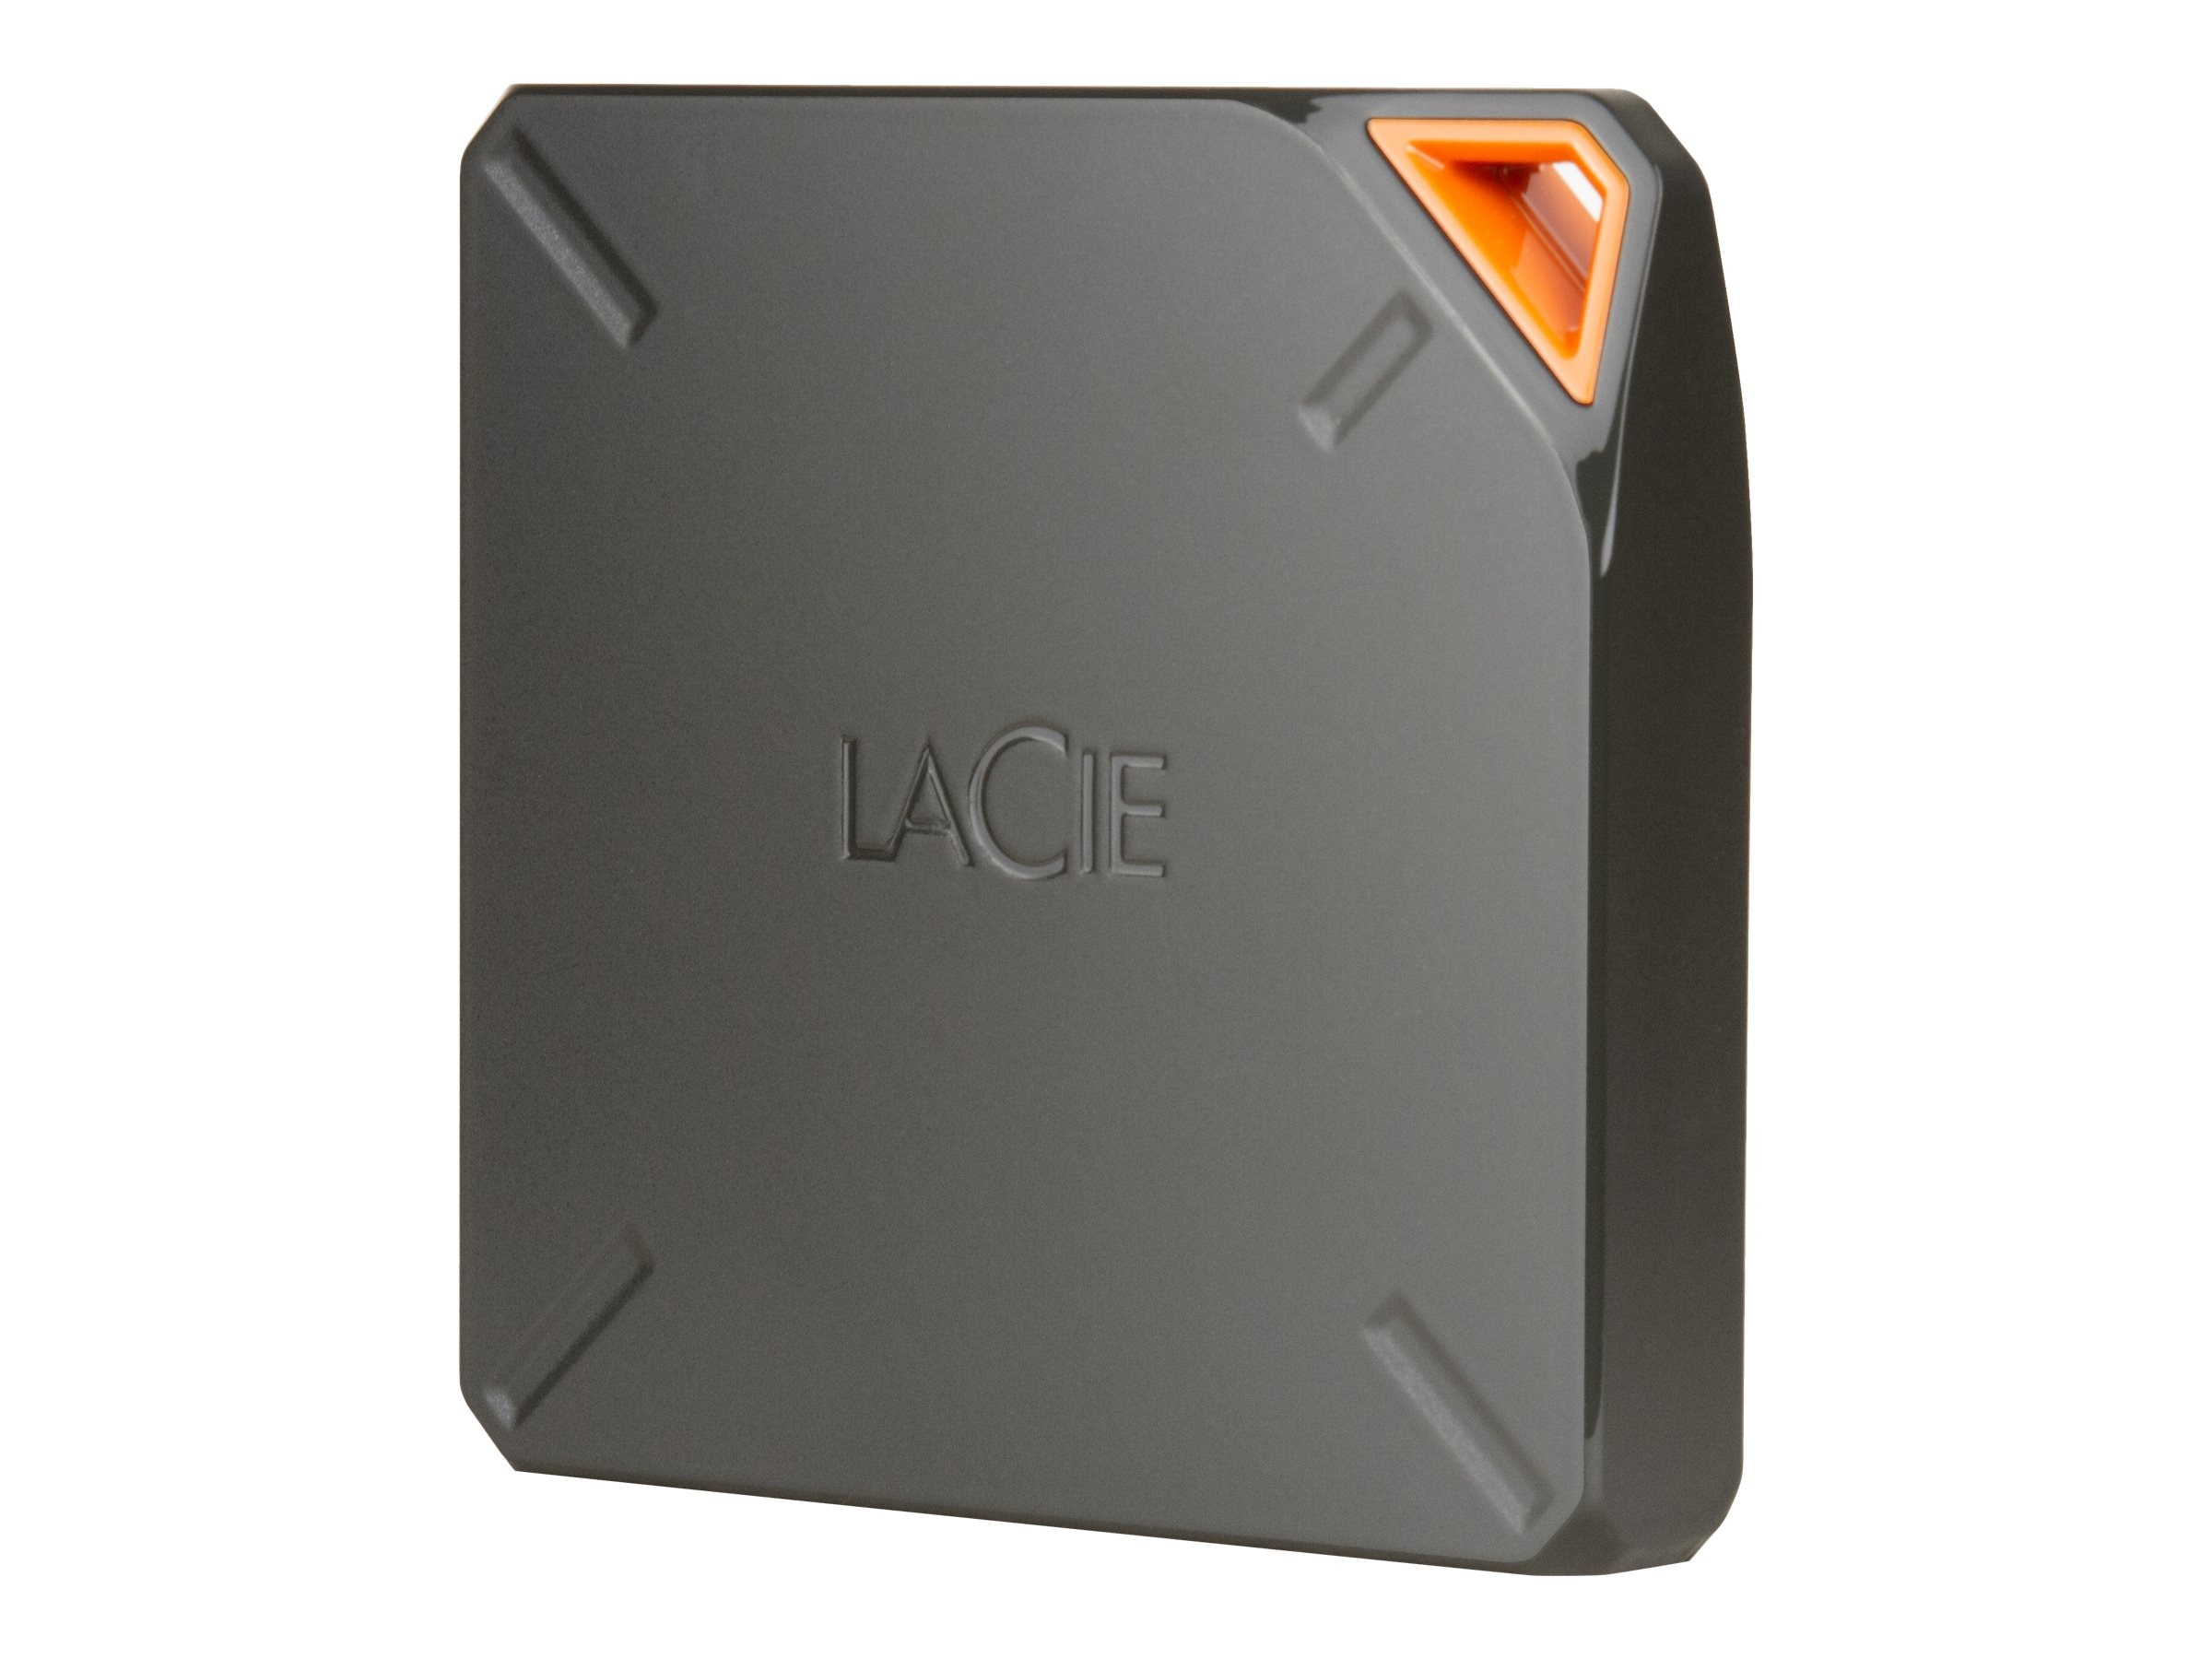 Lacie 2TB Fuel Wireless Storage